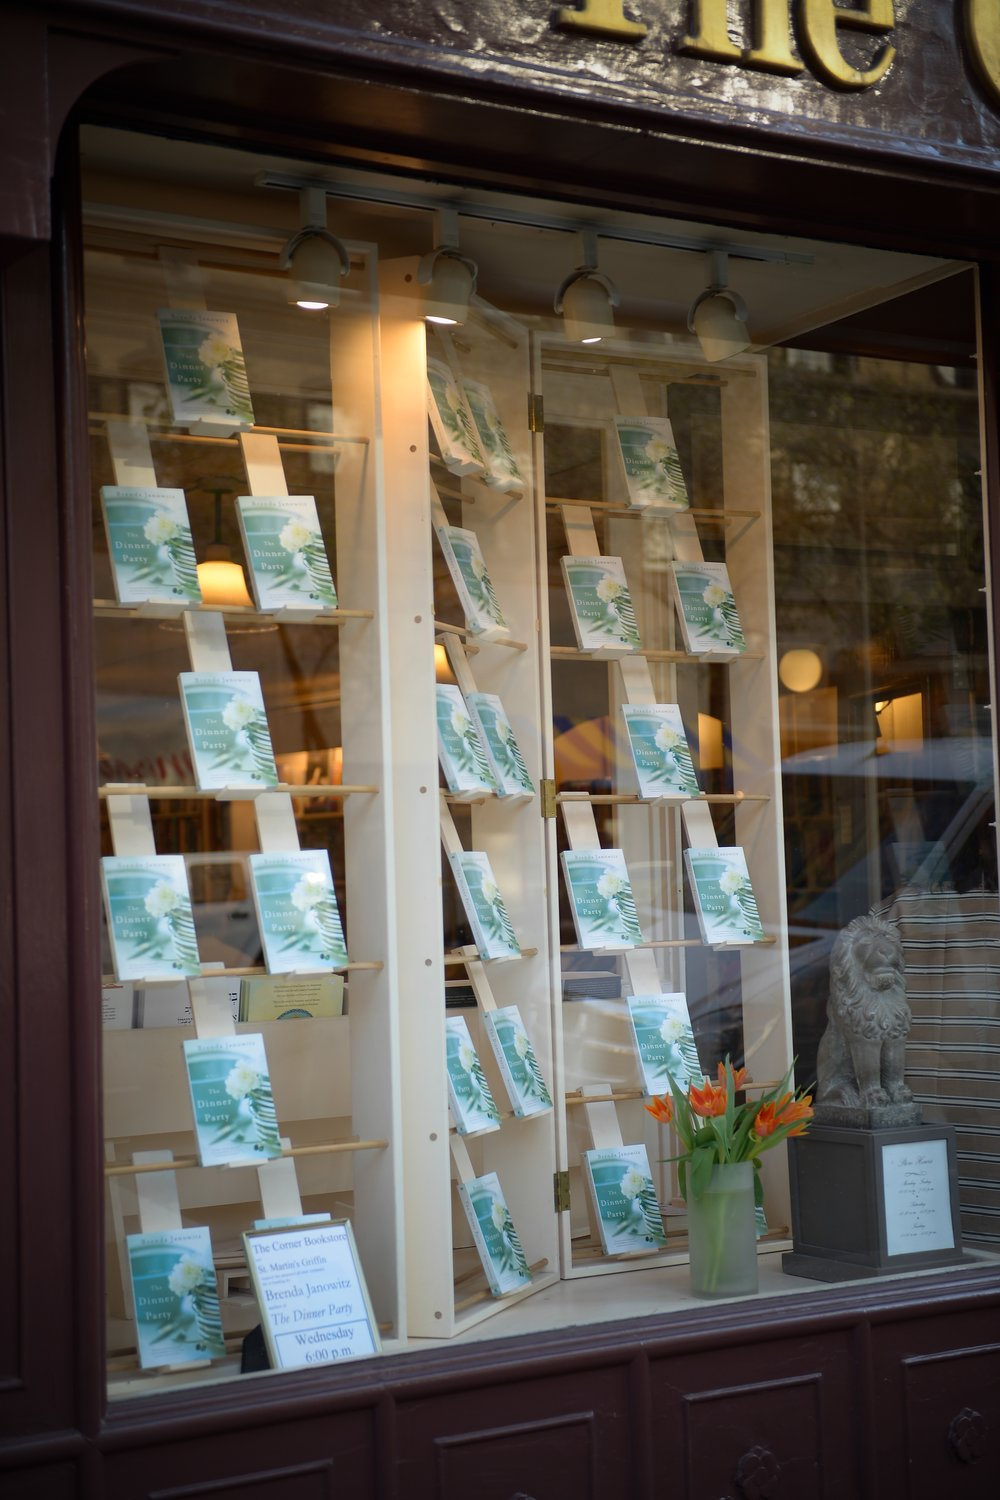 Such a proud moment to see the book covering the window at Corner Bookstore!